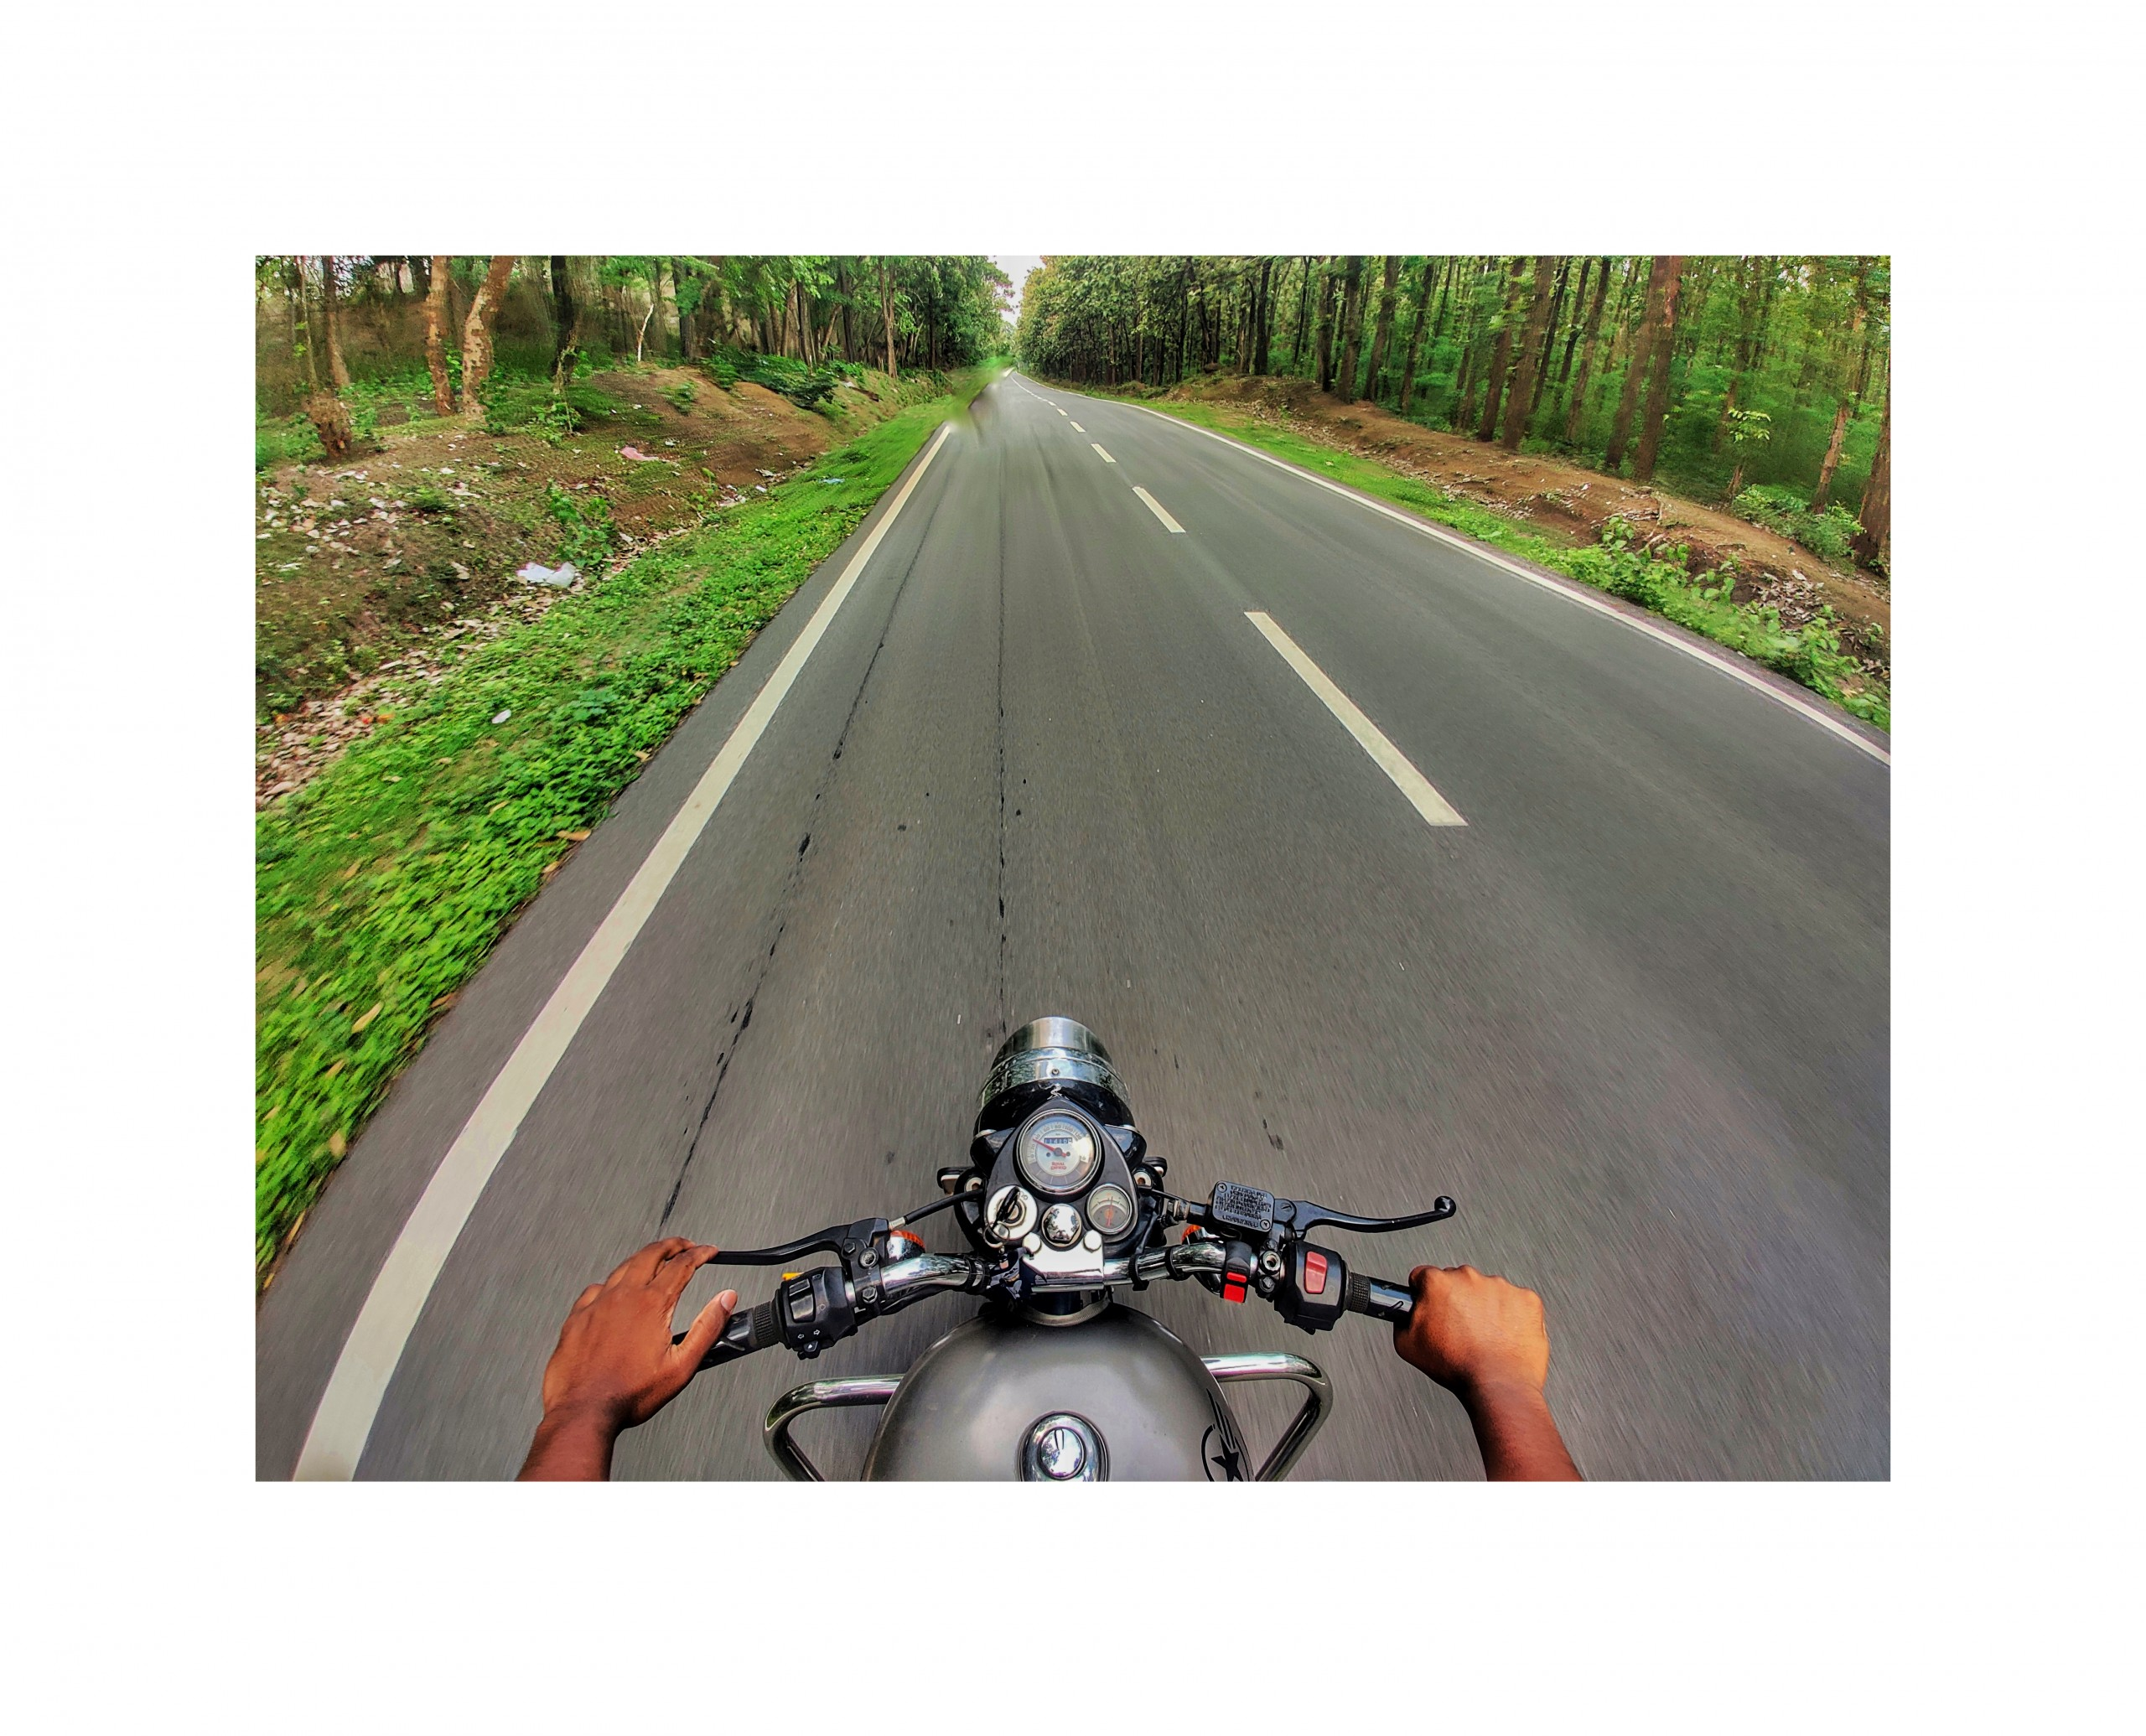 Riding Motorcycle on the Empty Road